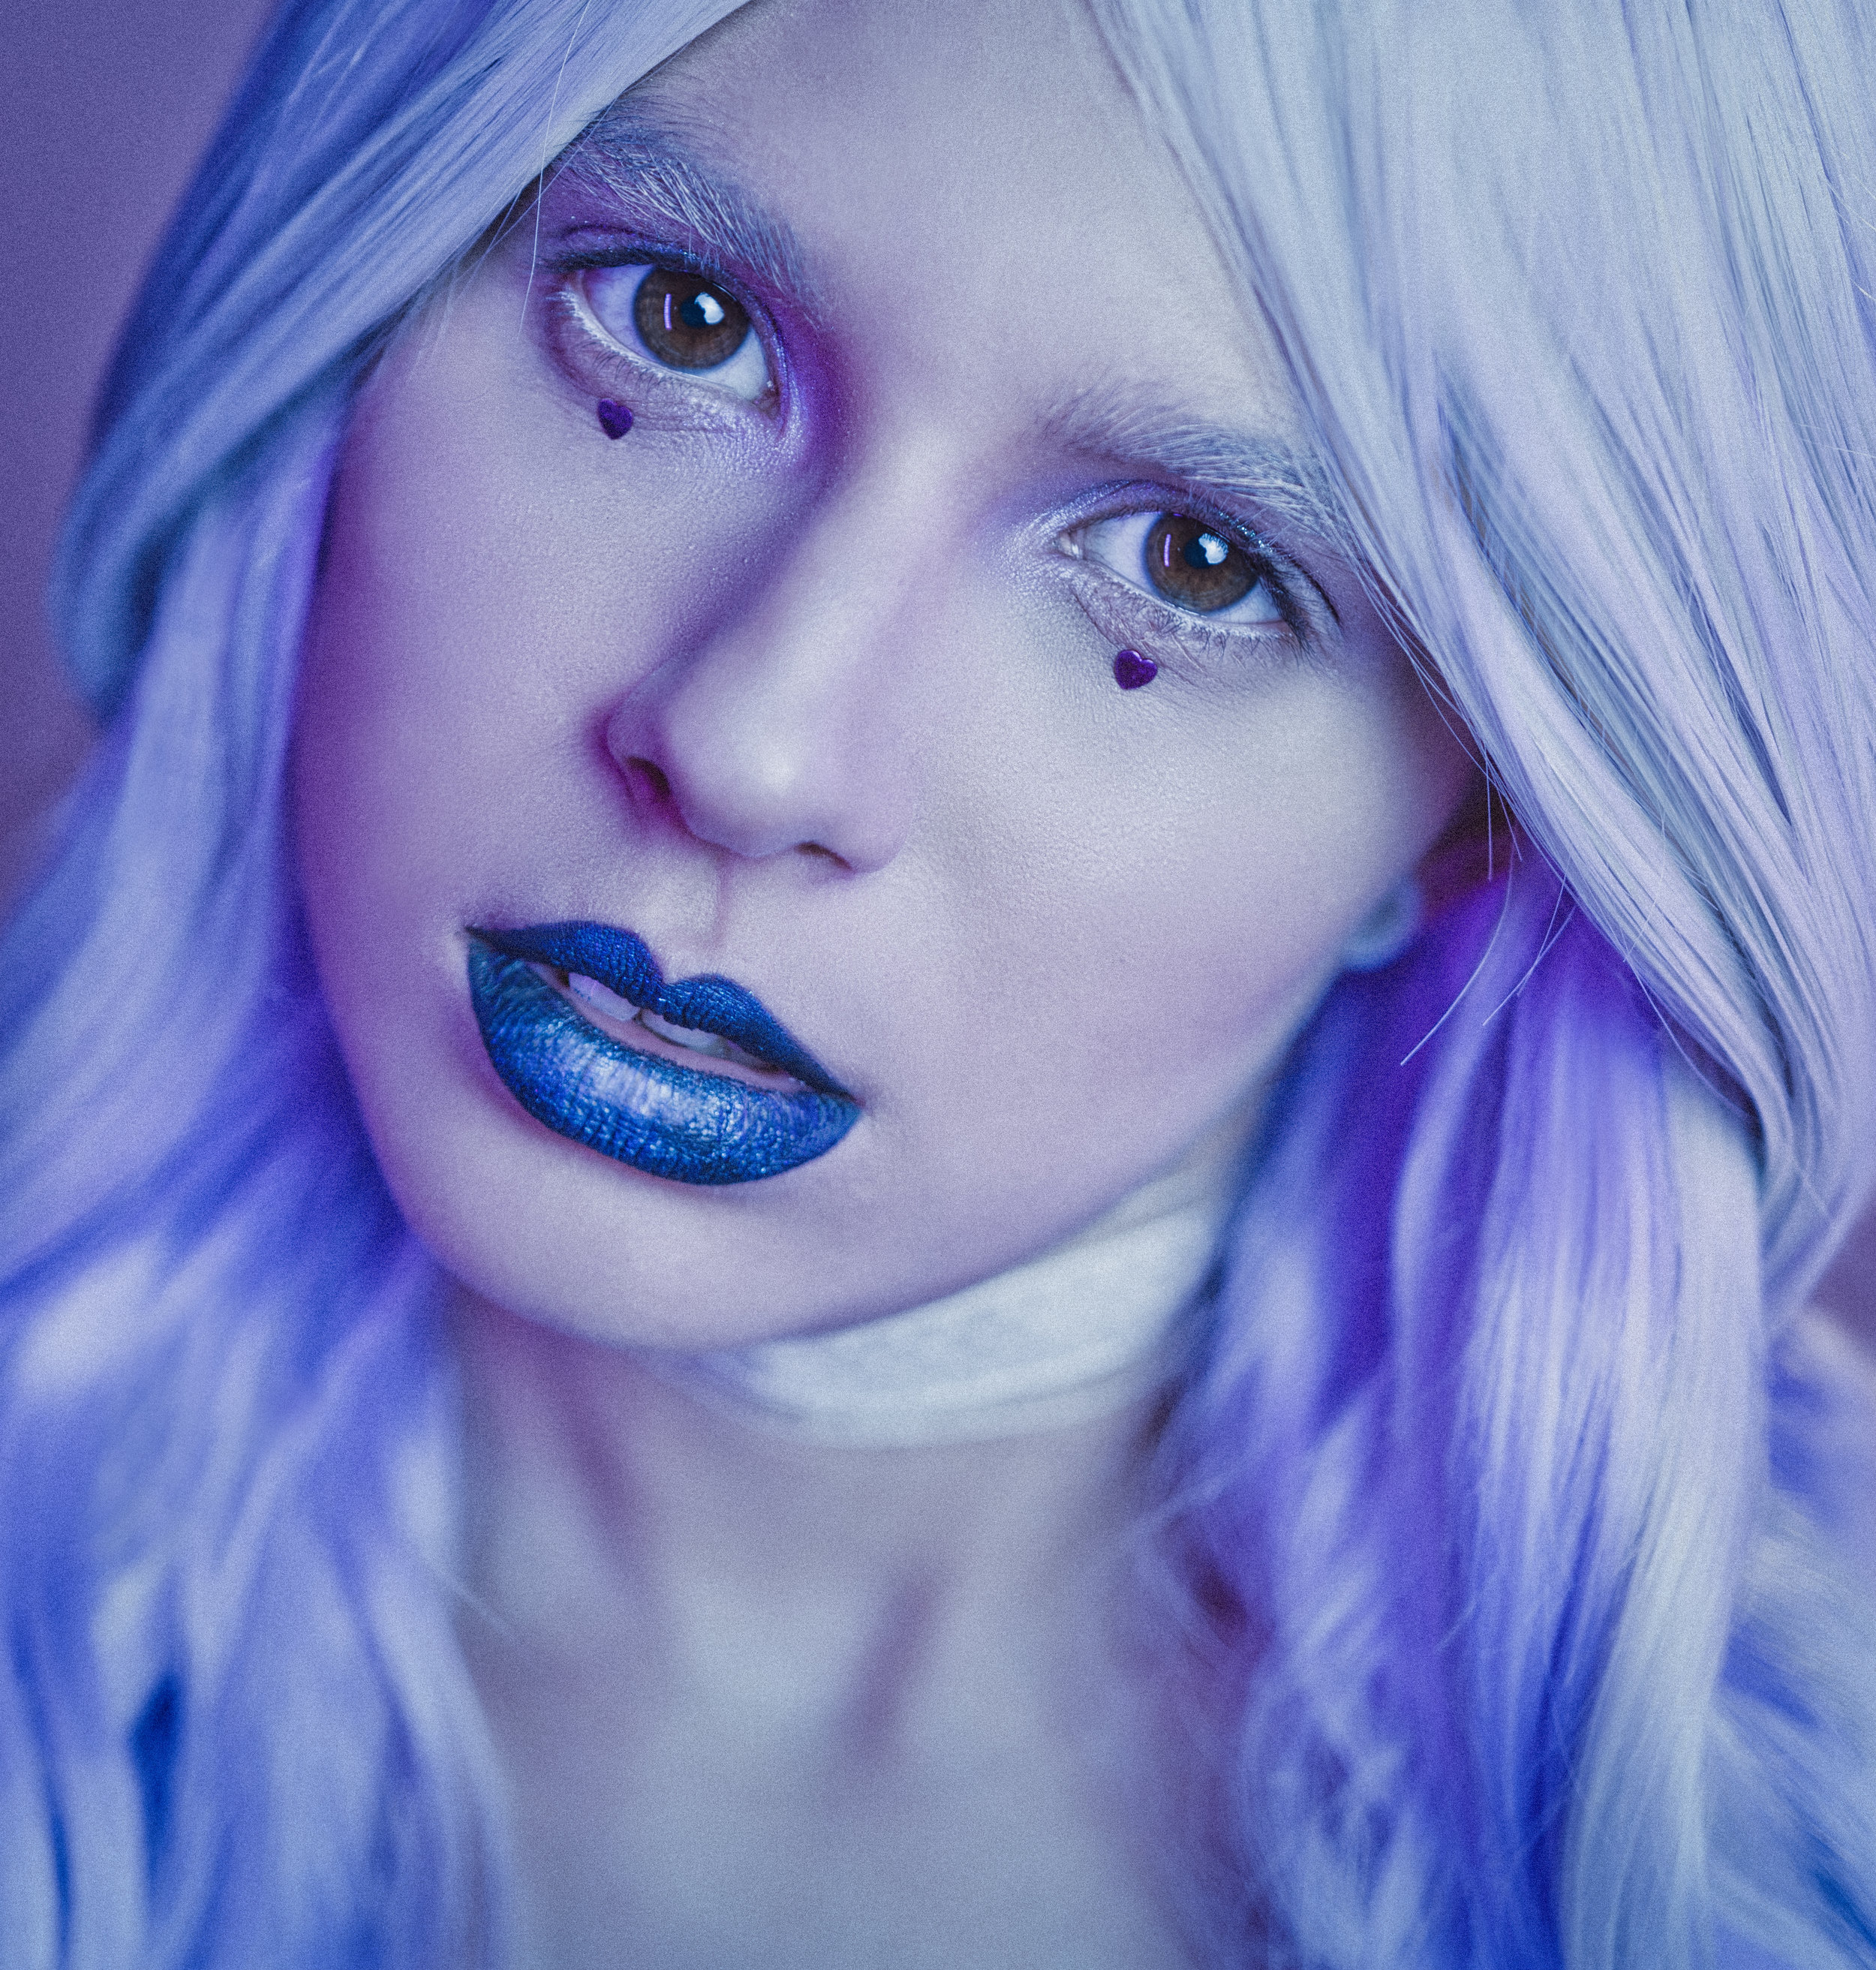 white hair blue lips sexy clown make-up young girl face crina popescu fotograf bucuresti universitate .jpg